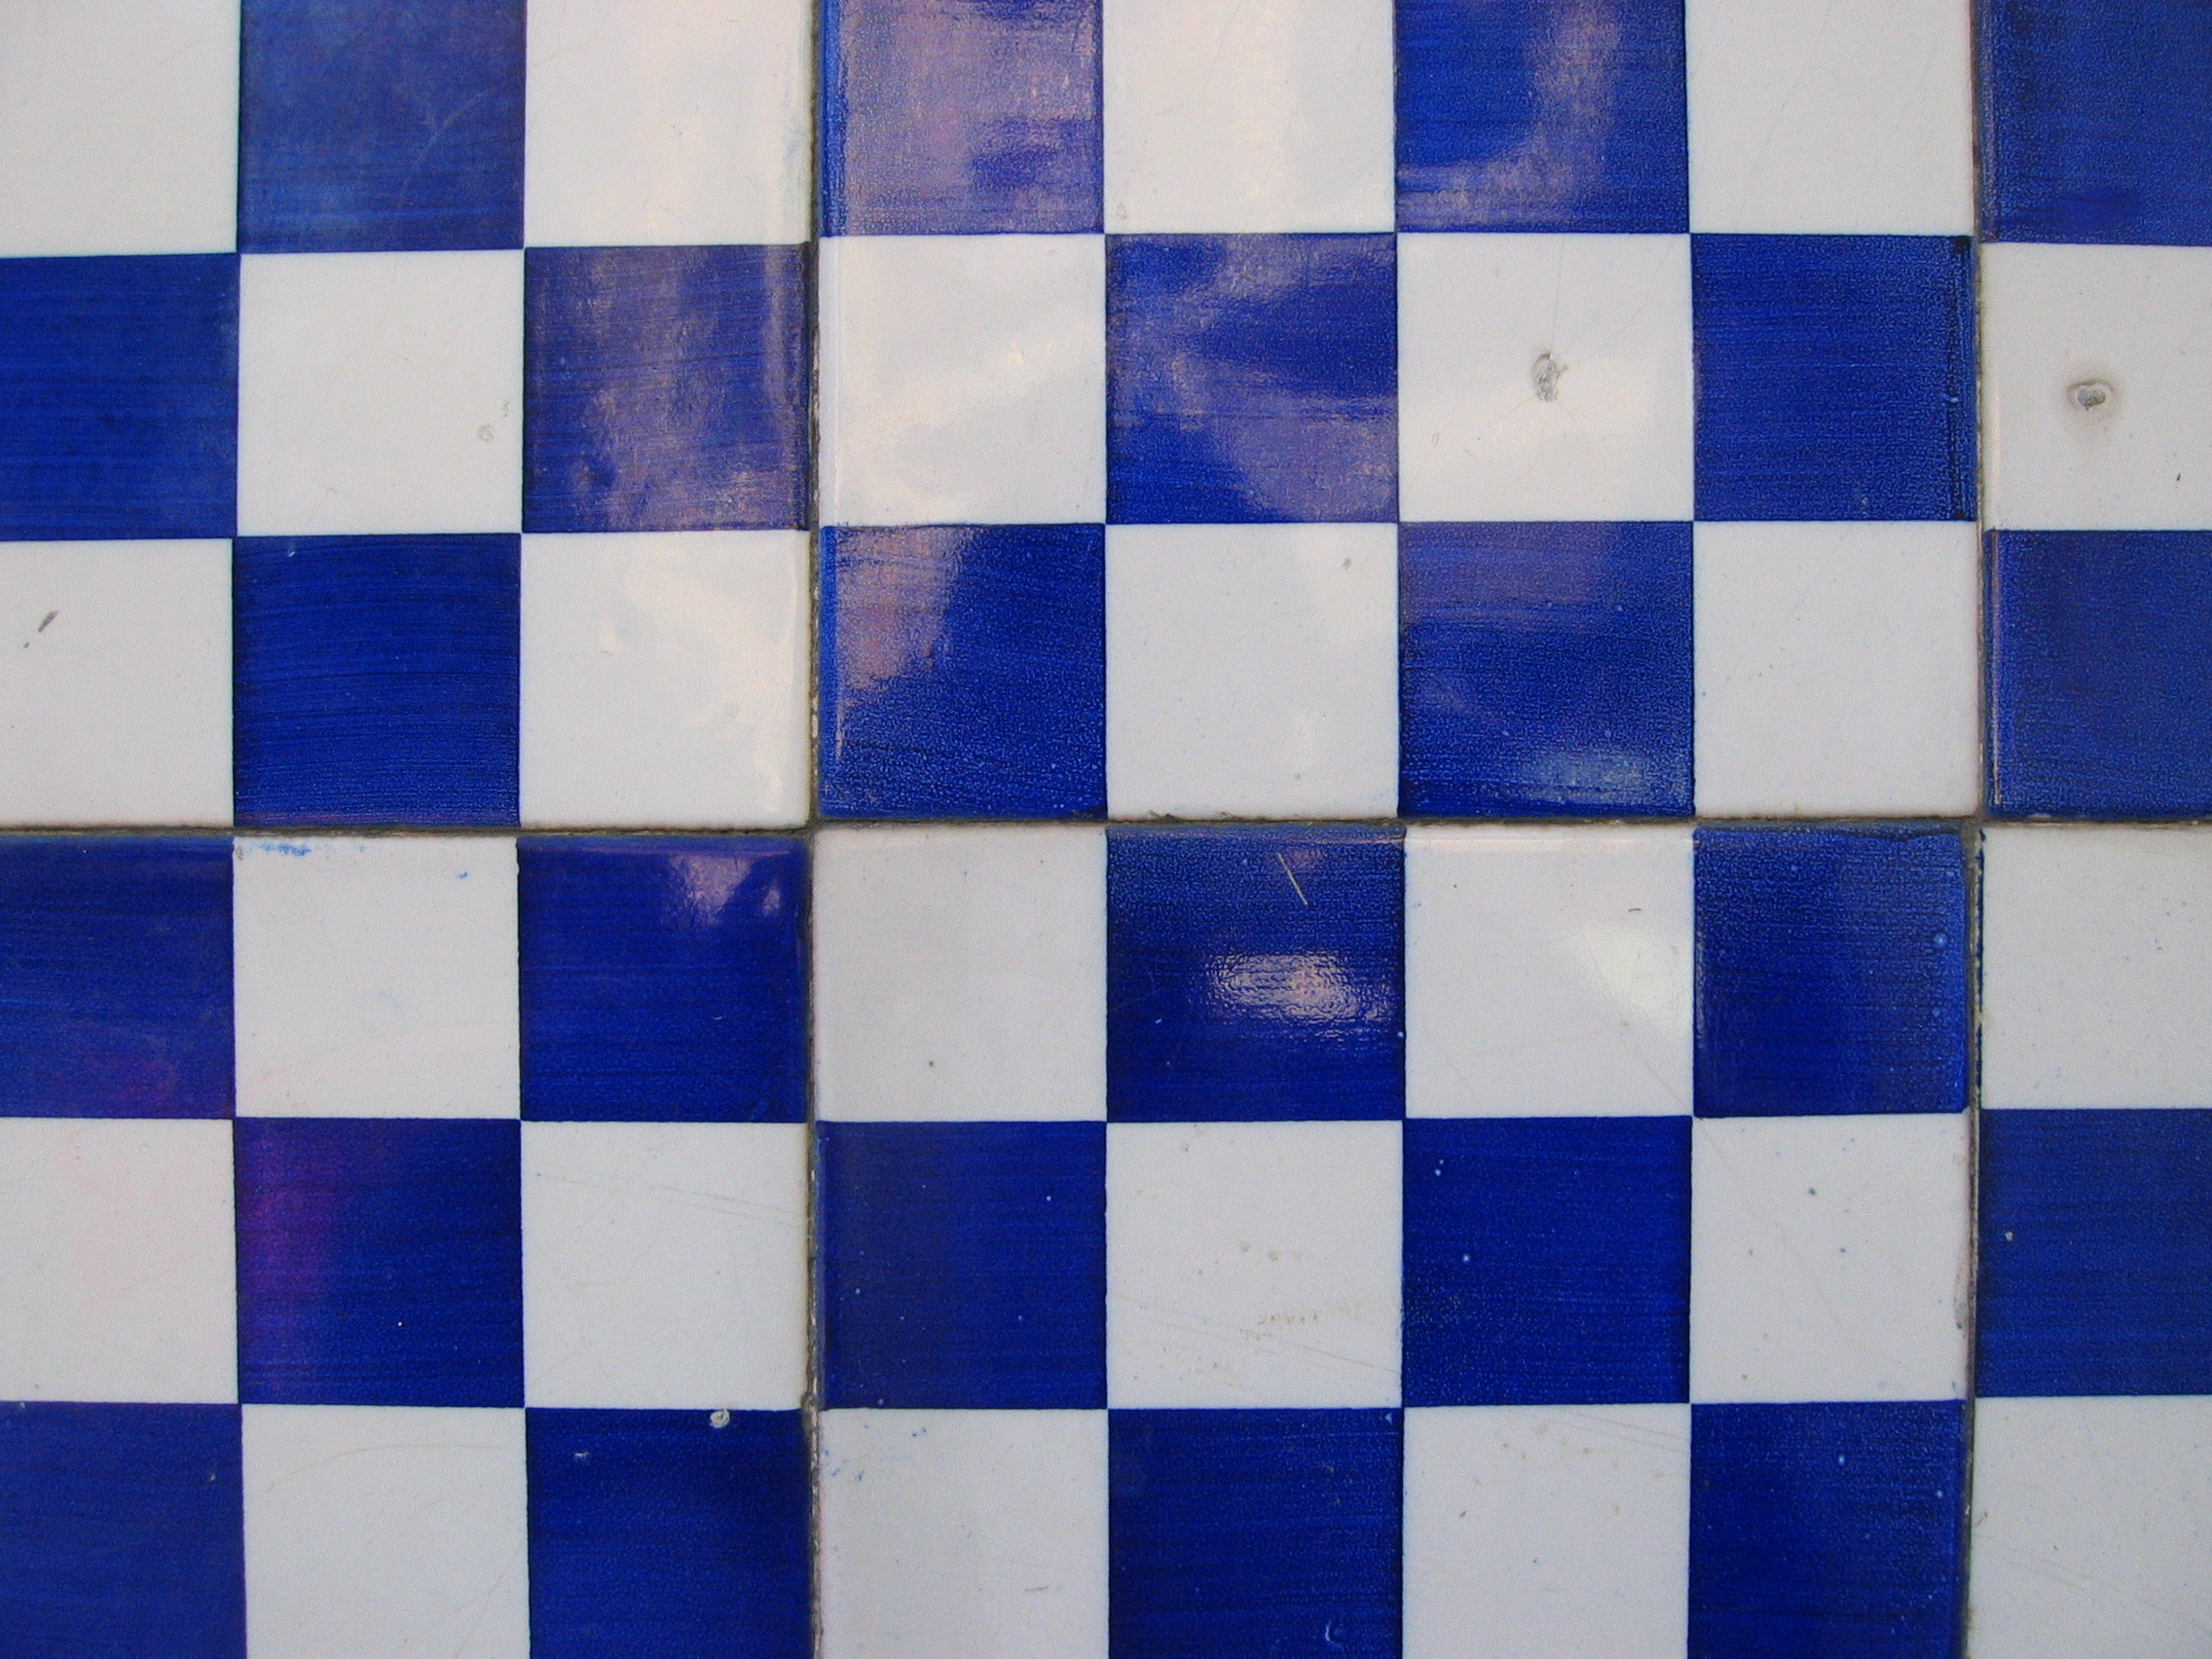 Blue_and_white_tiles